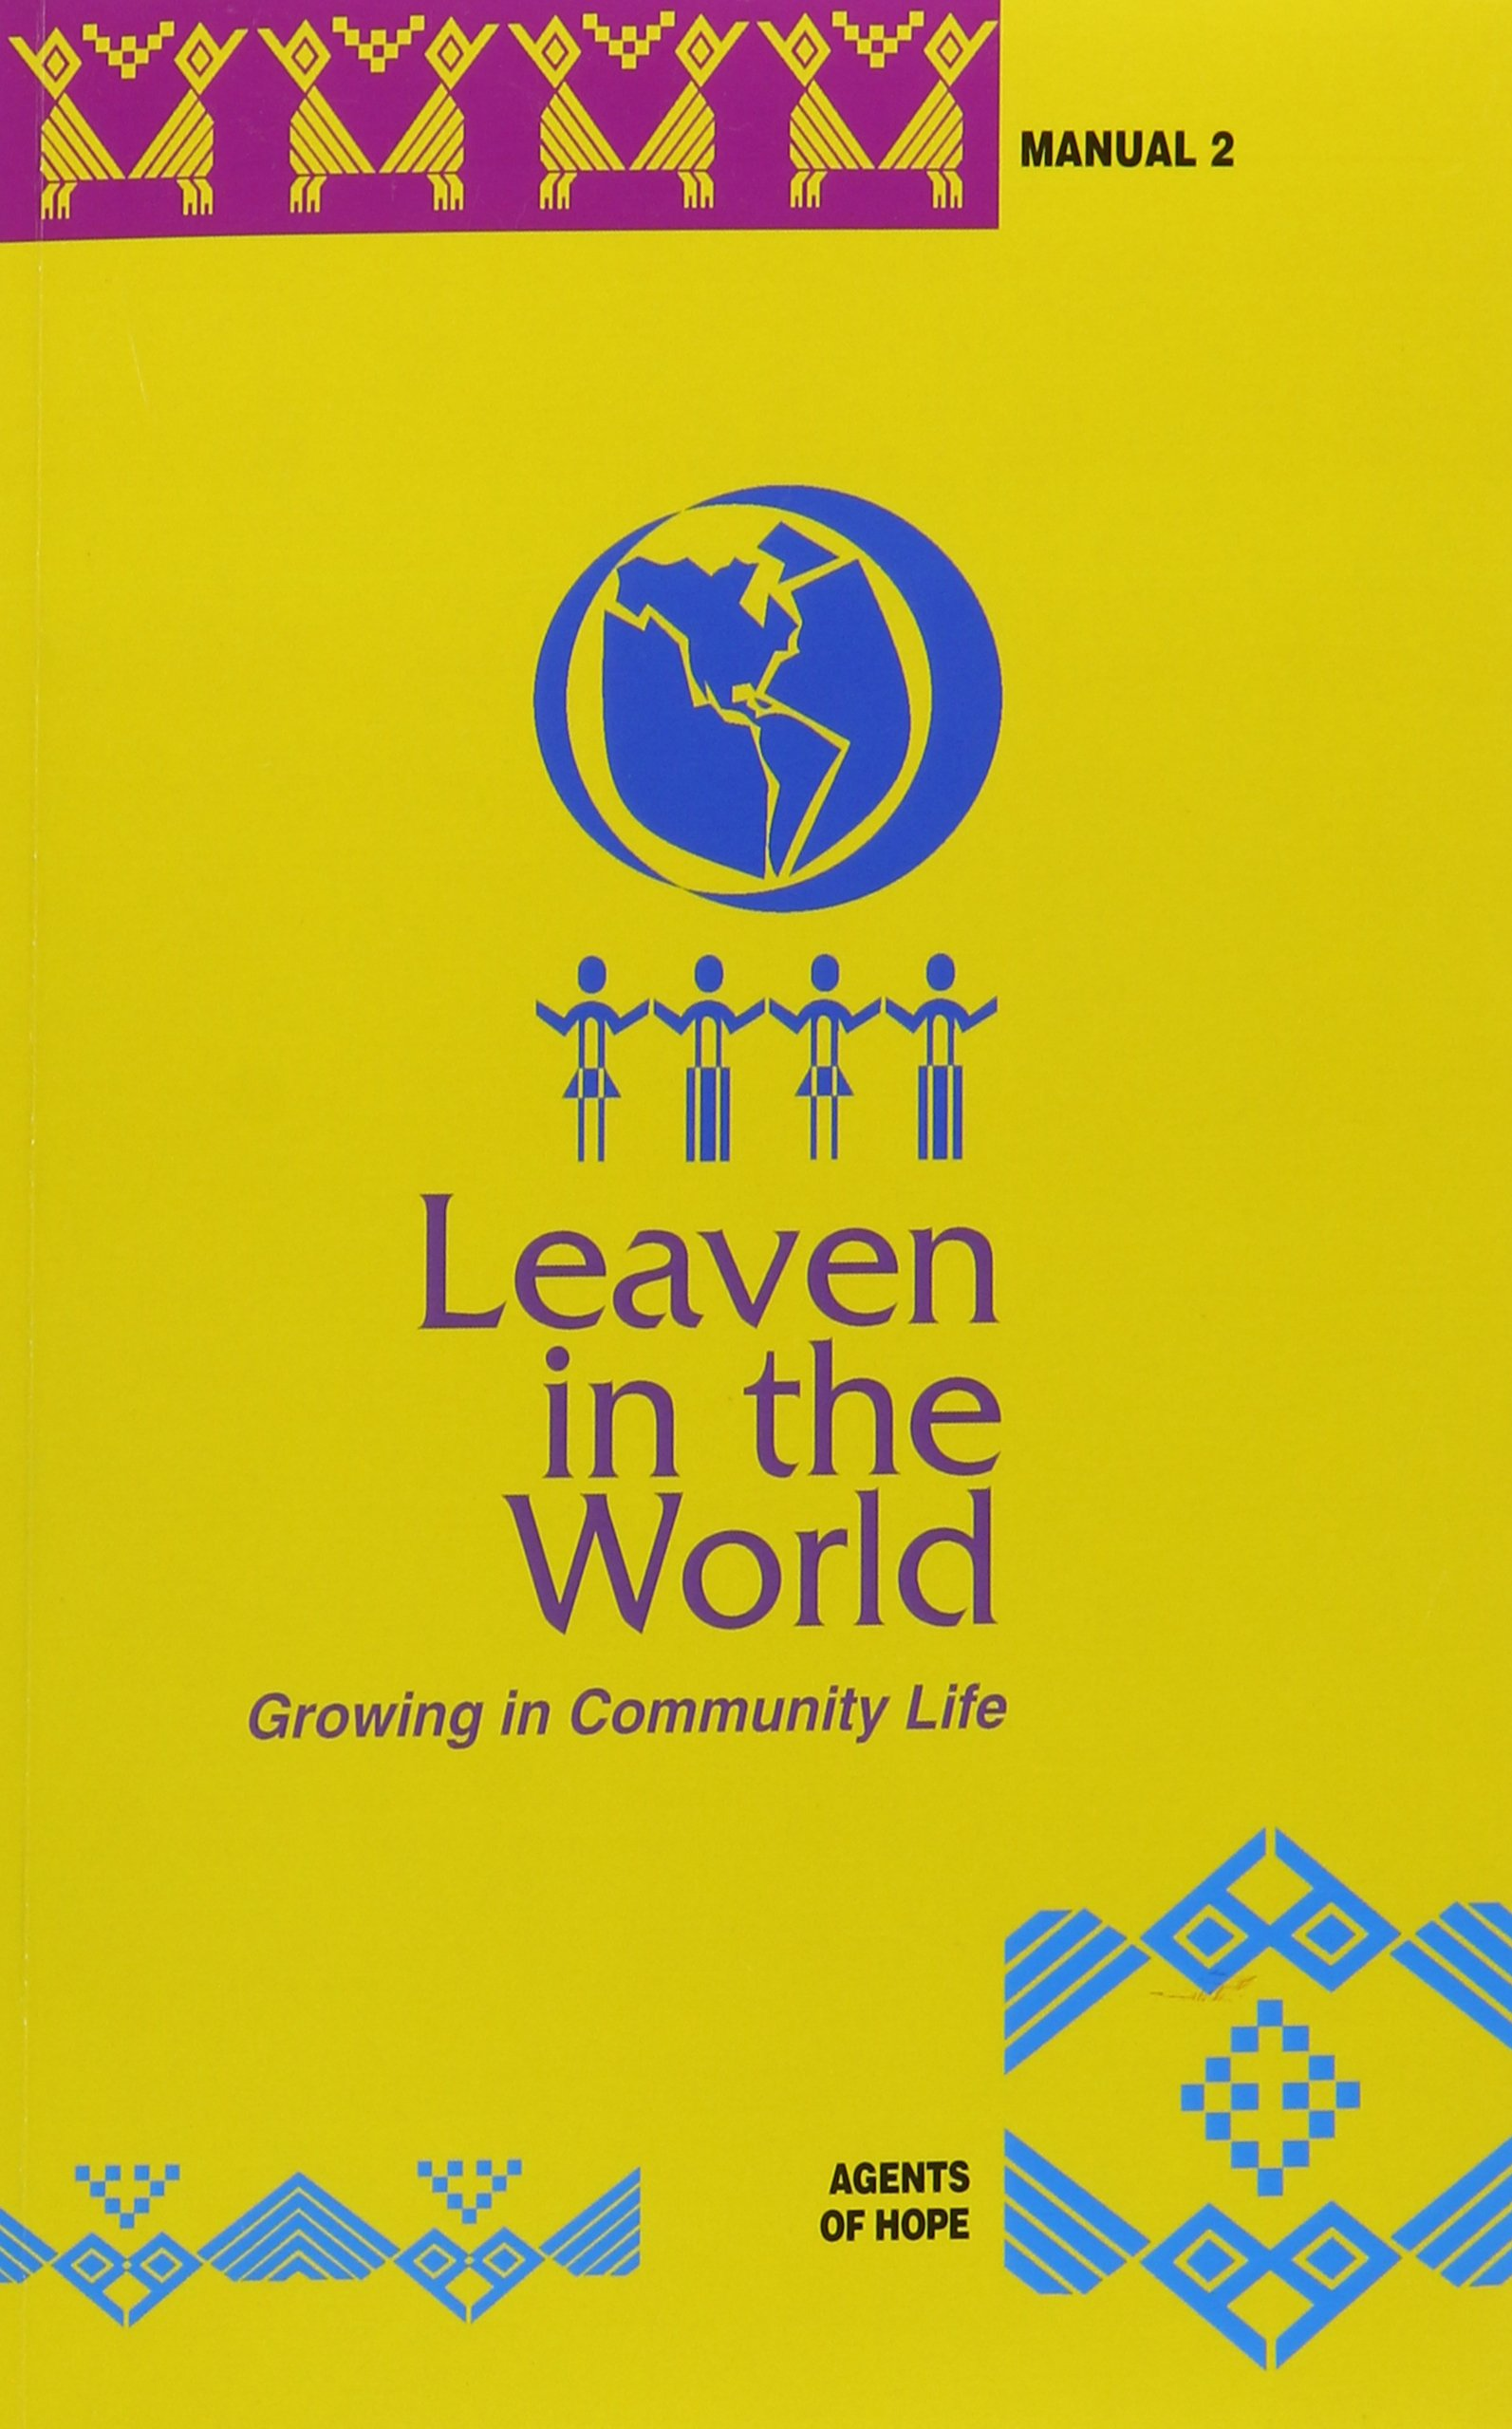 Leaven in the World: Growing in Community Life (Agents of Hope, Manual 2) PDF ePub book